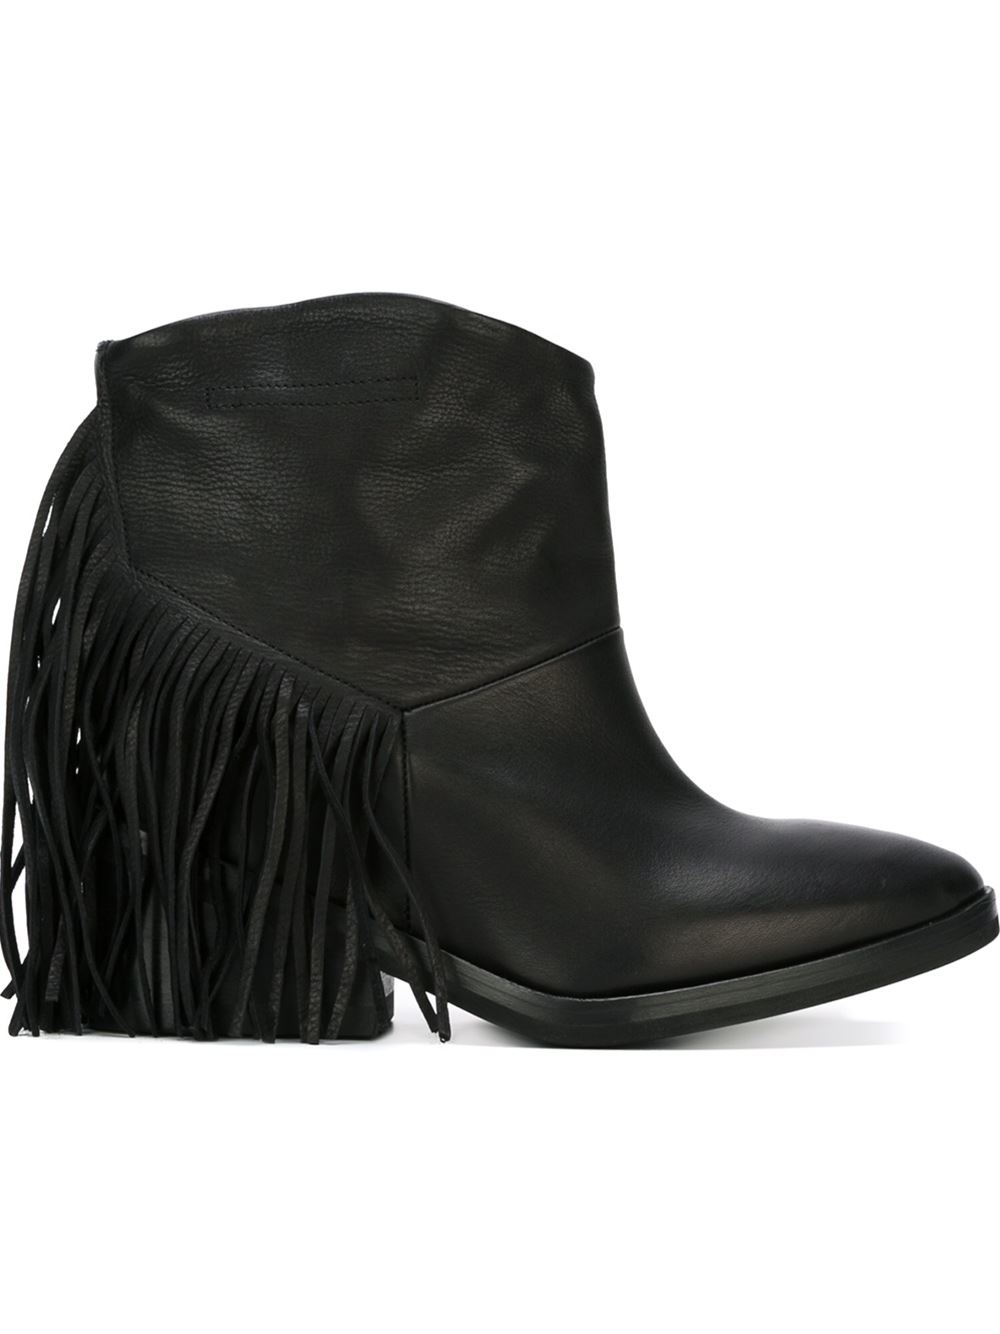 cinzia araia fringed ankle boots in black lyst